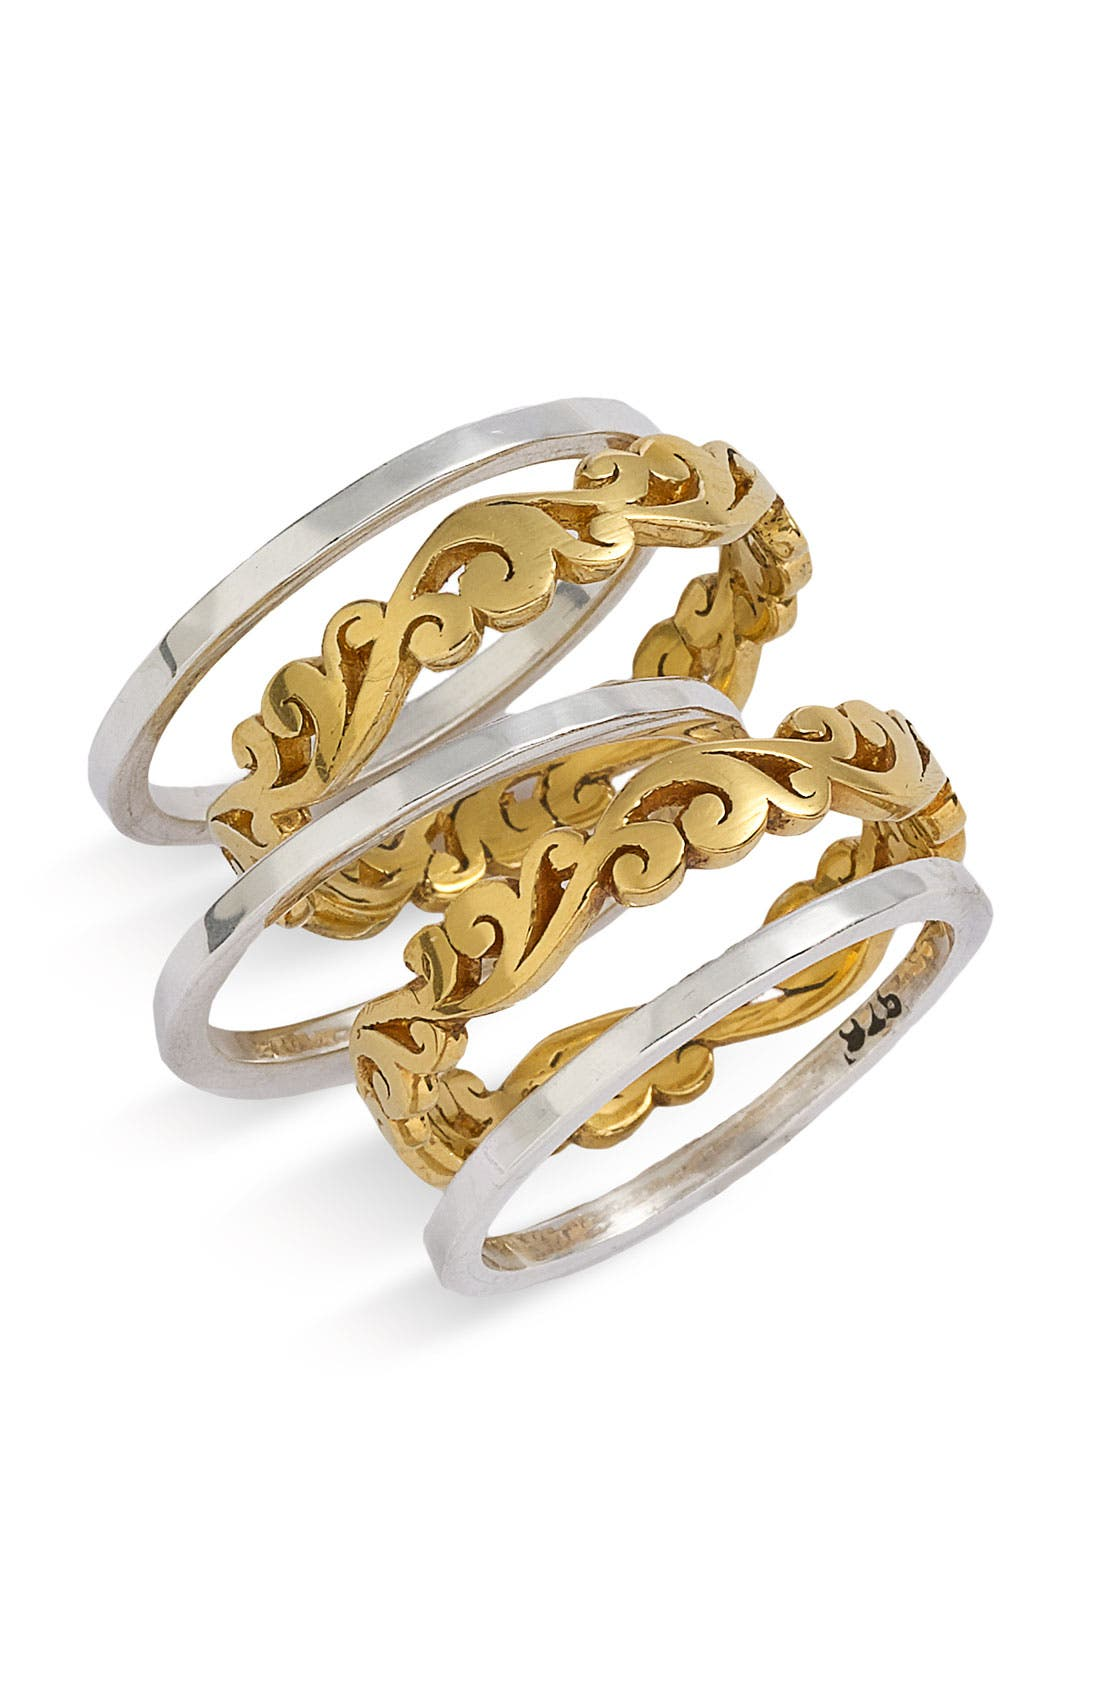 Main Image - Lois Hill 'Two Tone Organic Geo' Stack Rings (Set of 5) (Nordstrom Exclusive)